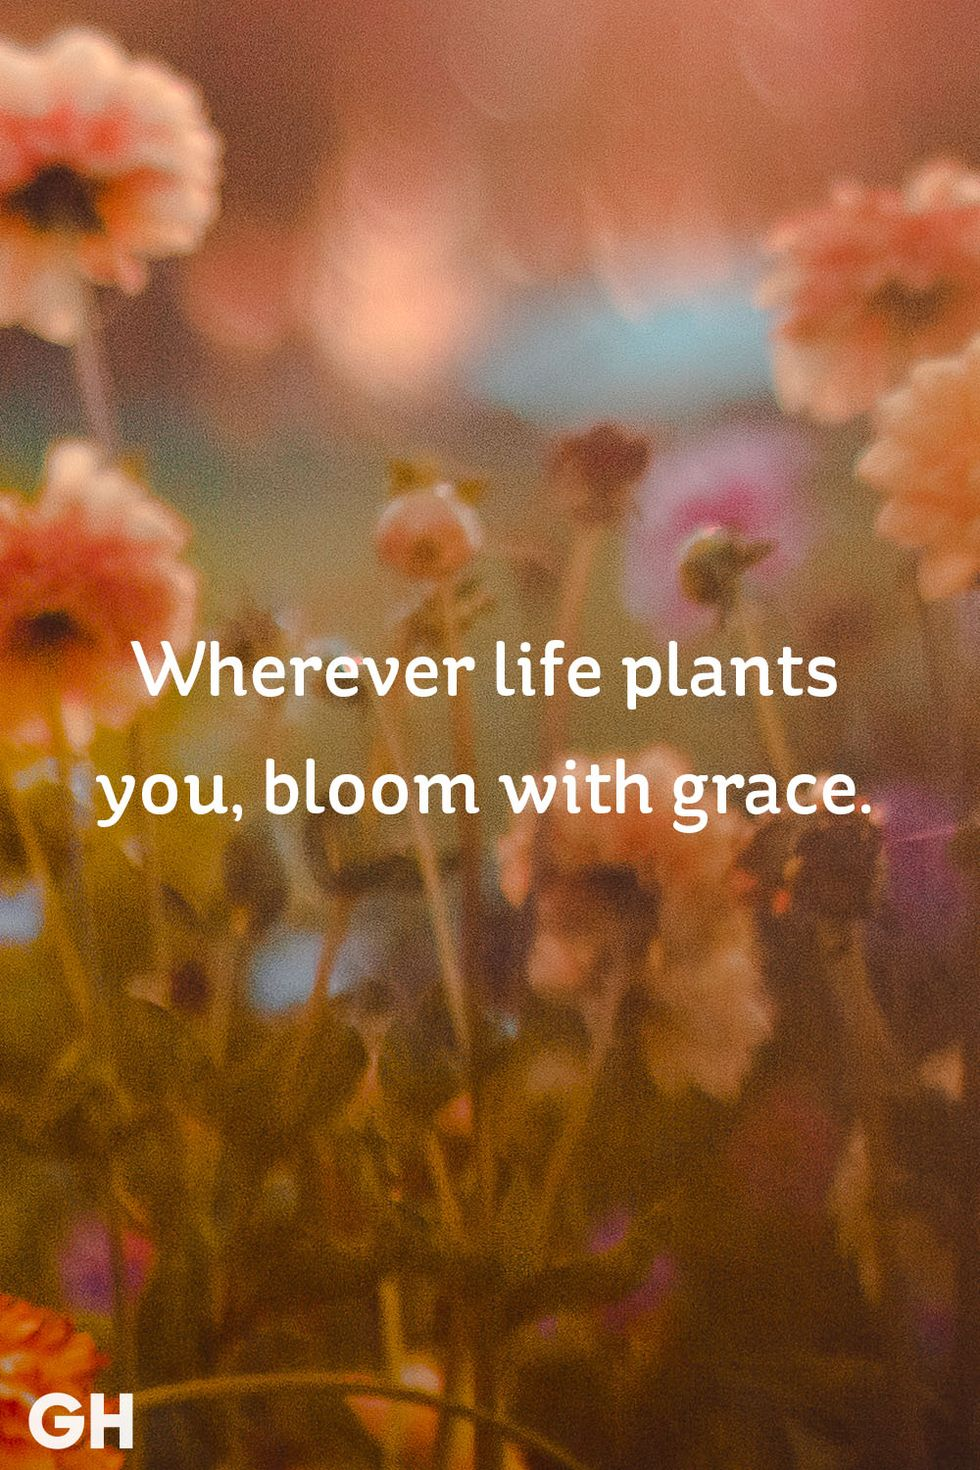 life-quotes-grace-1530194208.jpg?crop=1xw:1xh;center,top&resize=980:*